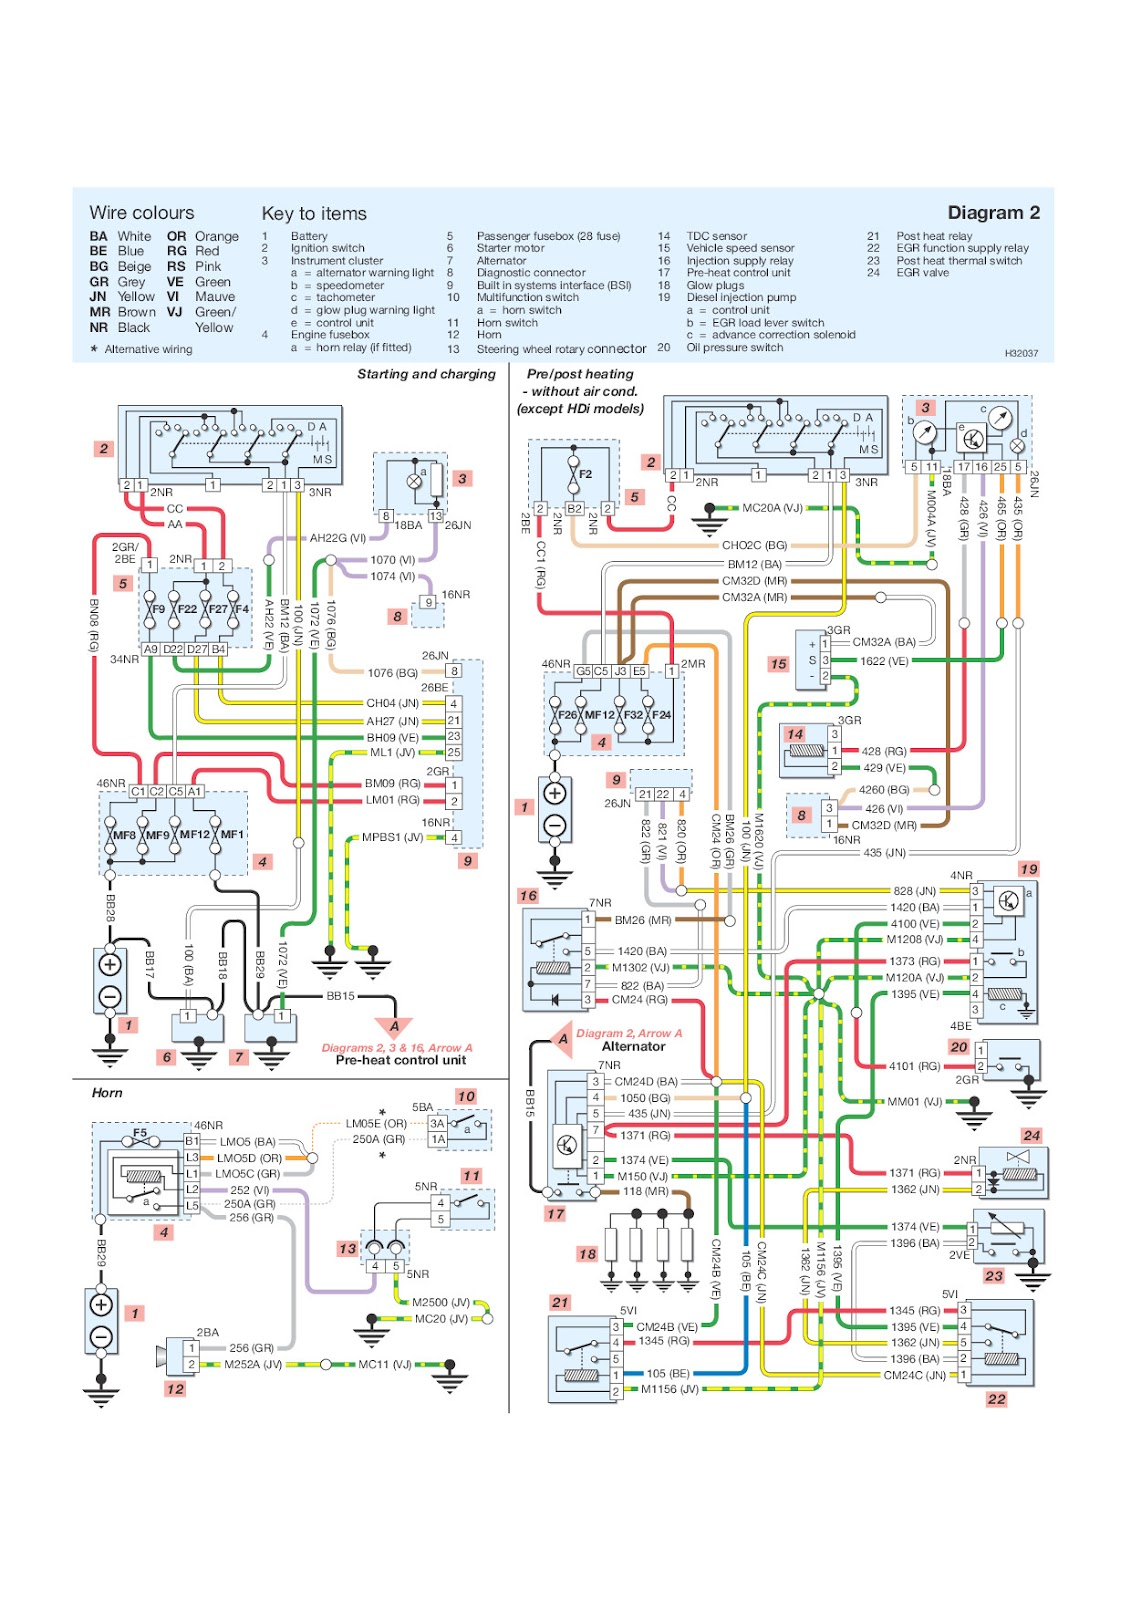 C6500 Fuse Box Diagram Further 1997 Honda Foreman 400 Wiring Diagrams